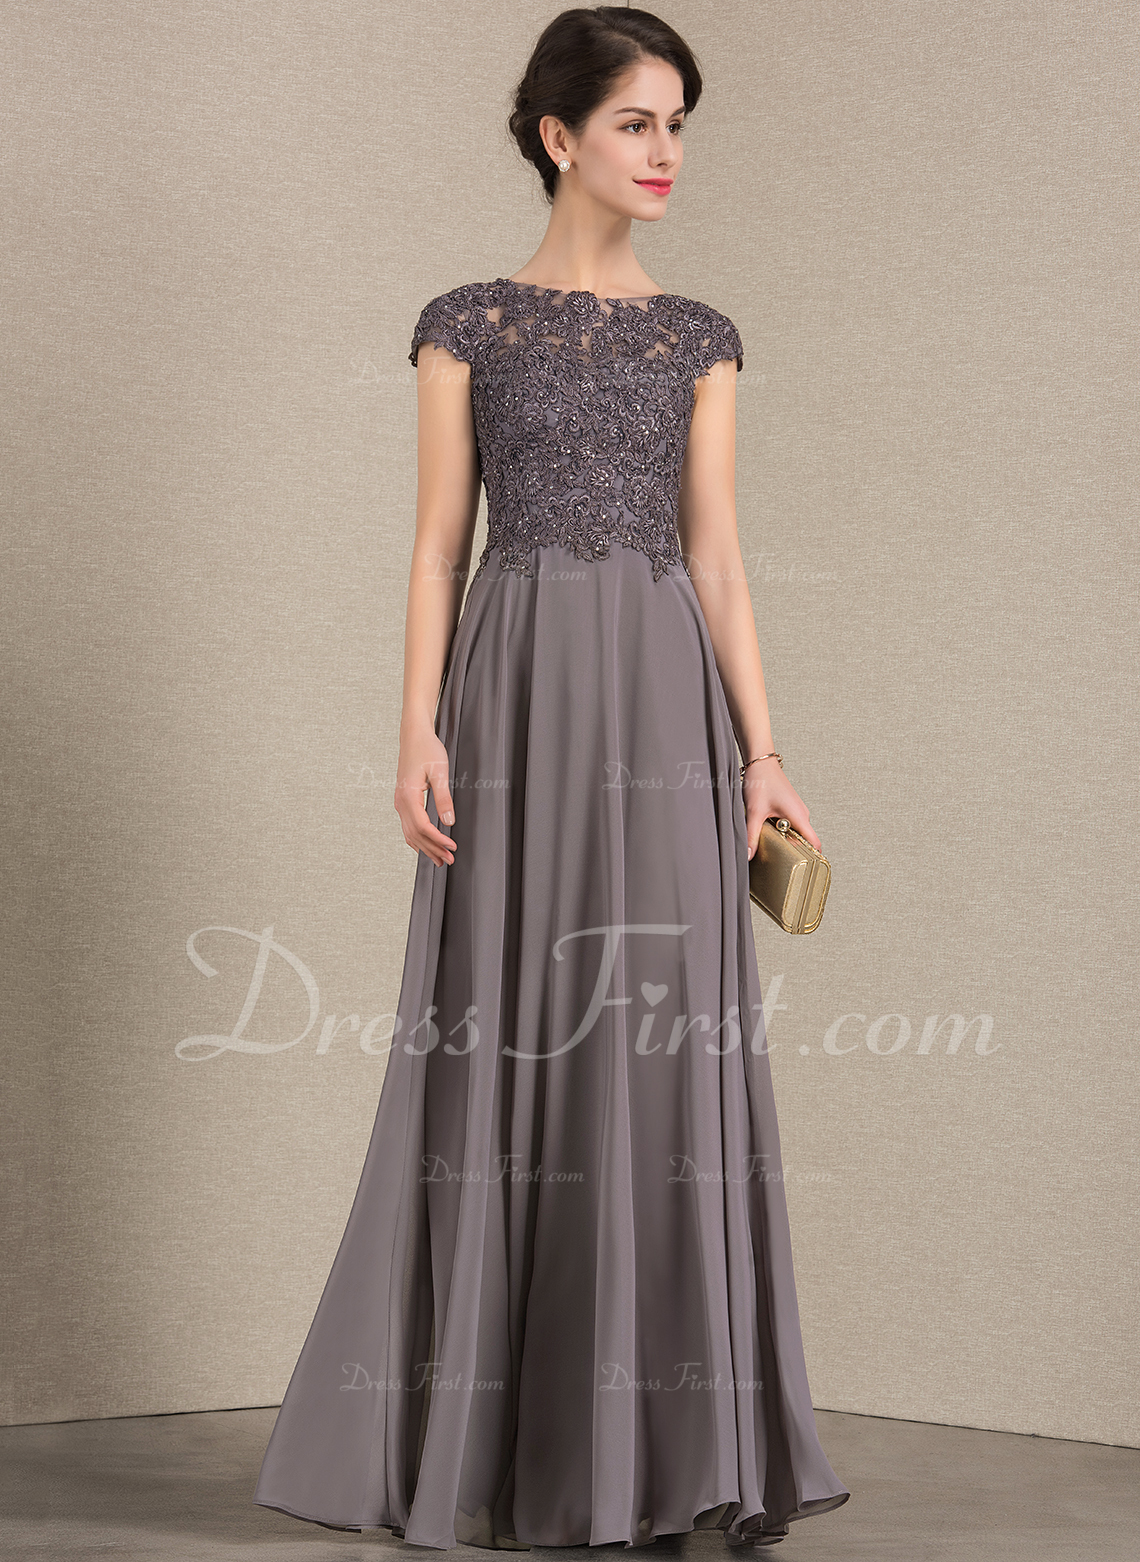 99a01a21e8e A-Line Princess Scoop Neck Floor-Length Chiffon Lace Mother of the Bride  Dress With Beading  143385